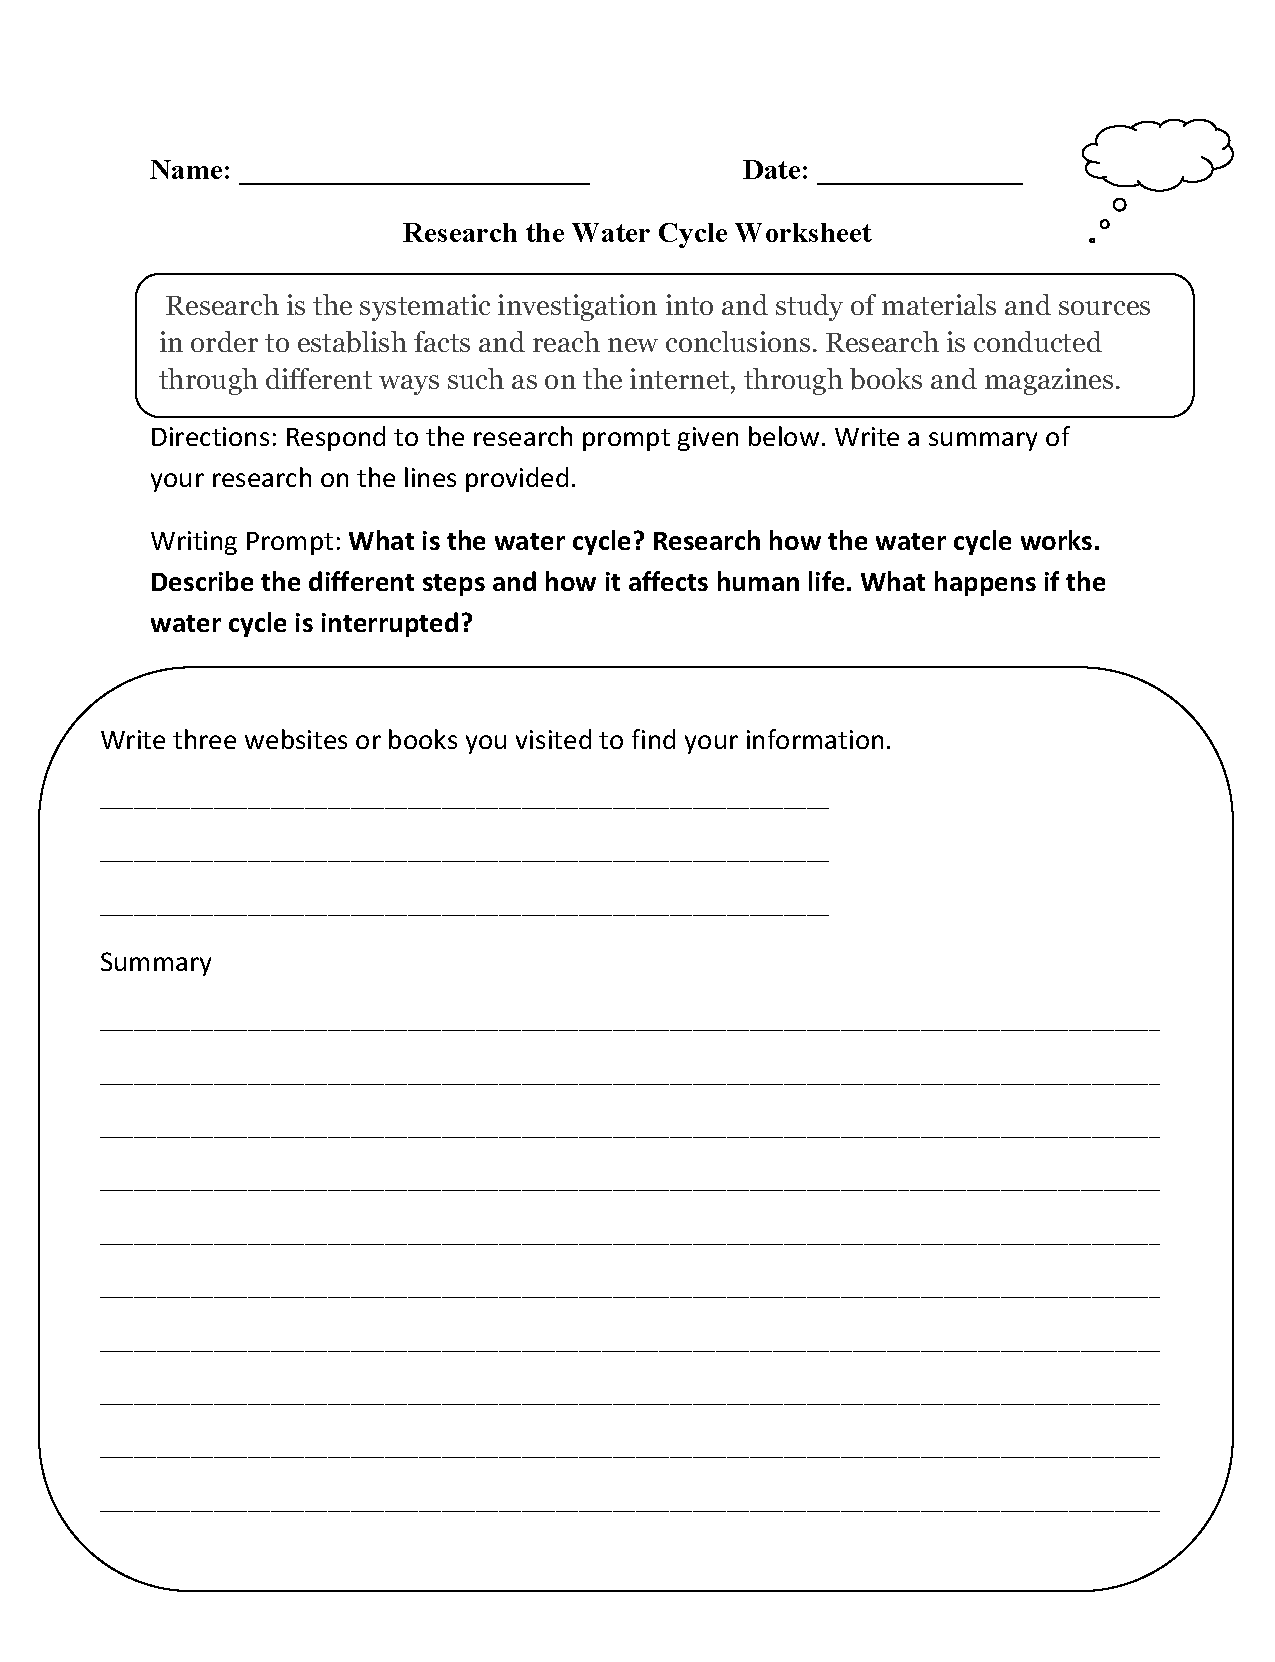 Research Worksheets | Research the Water Cycle Worksheet